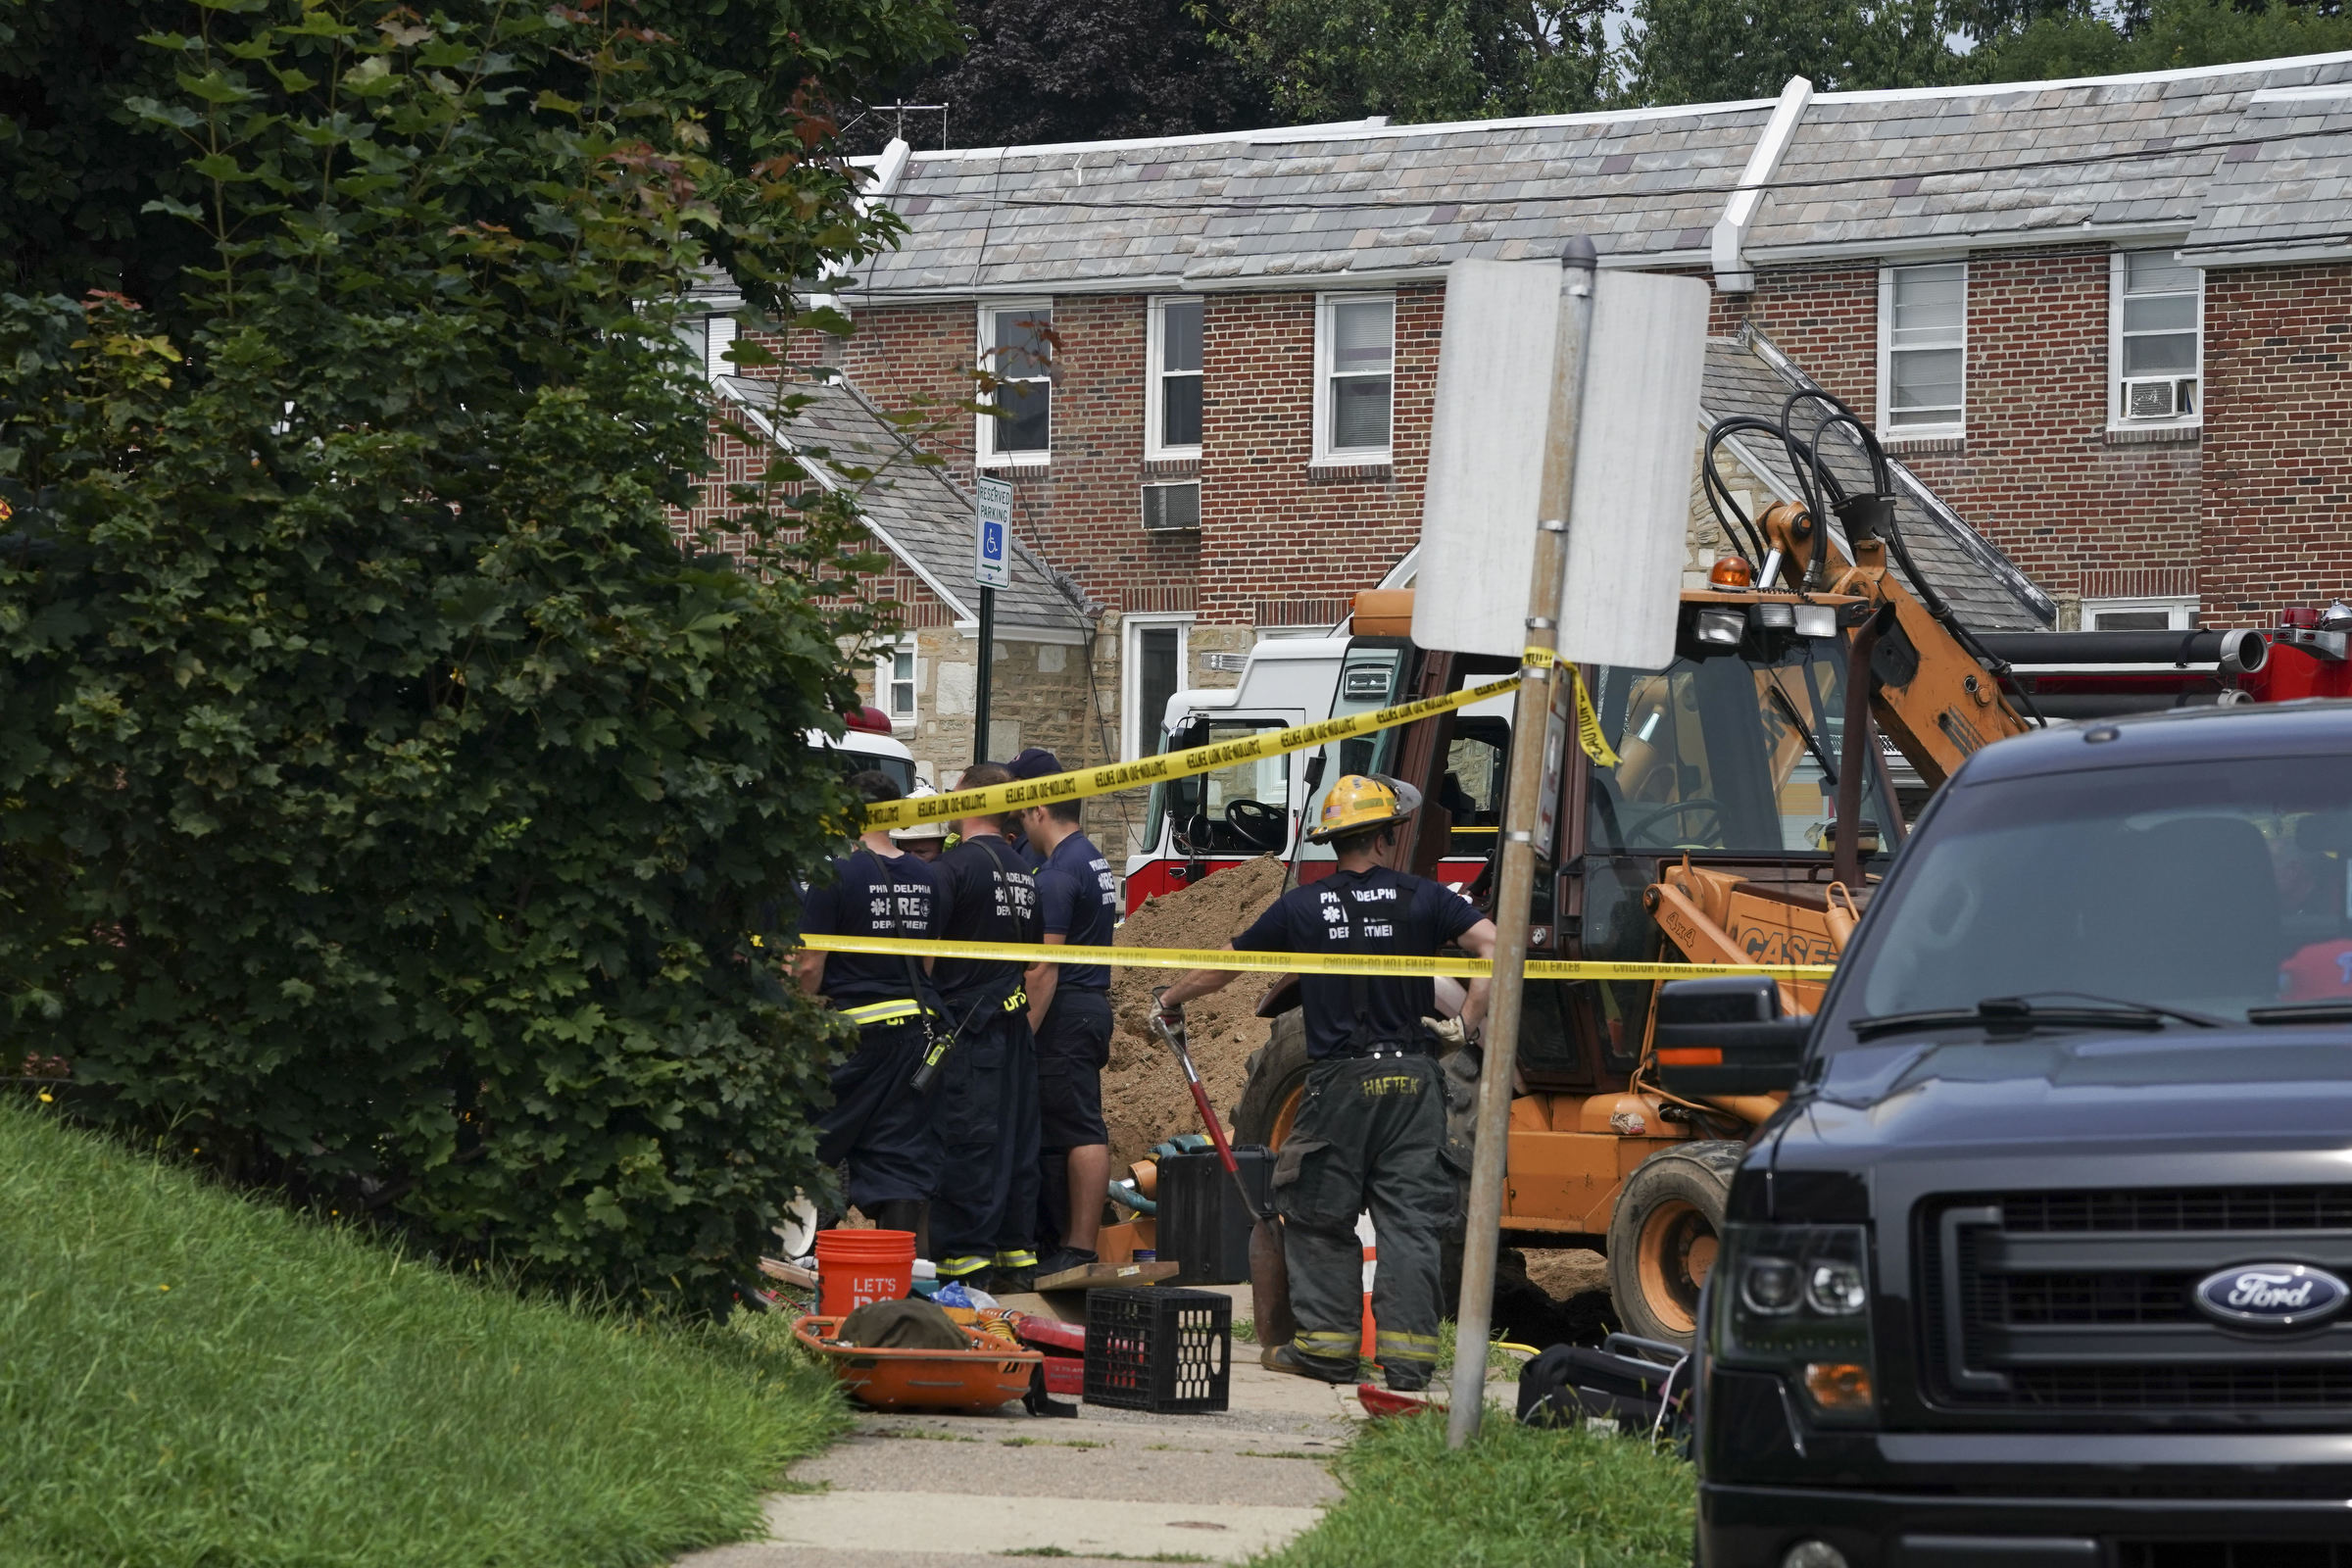 Authorities gather Thursday in the 100 block of West Walnut Park Drive.